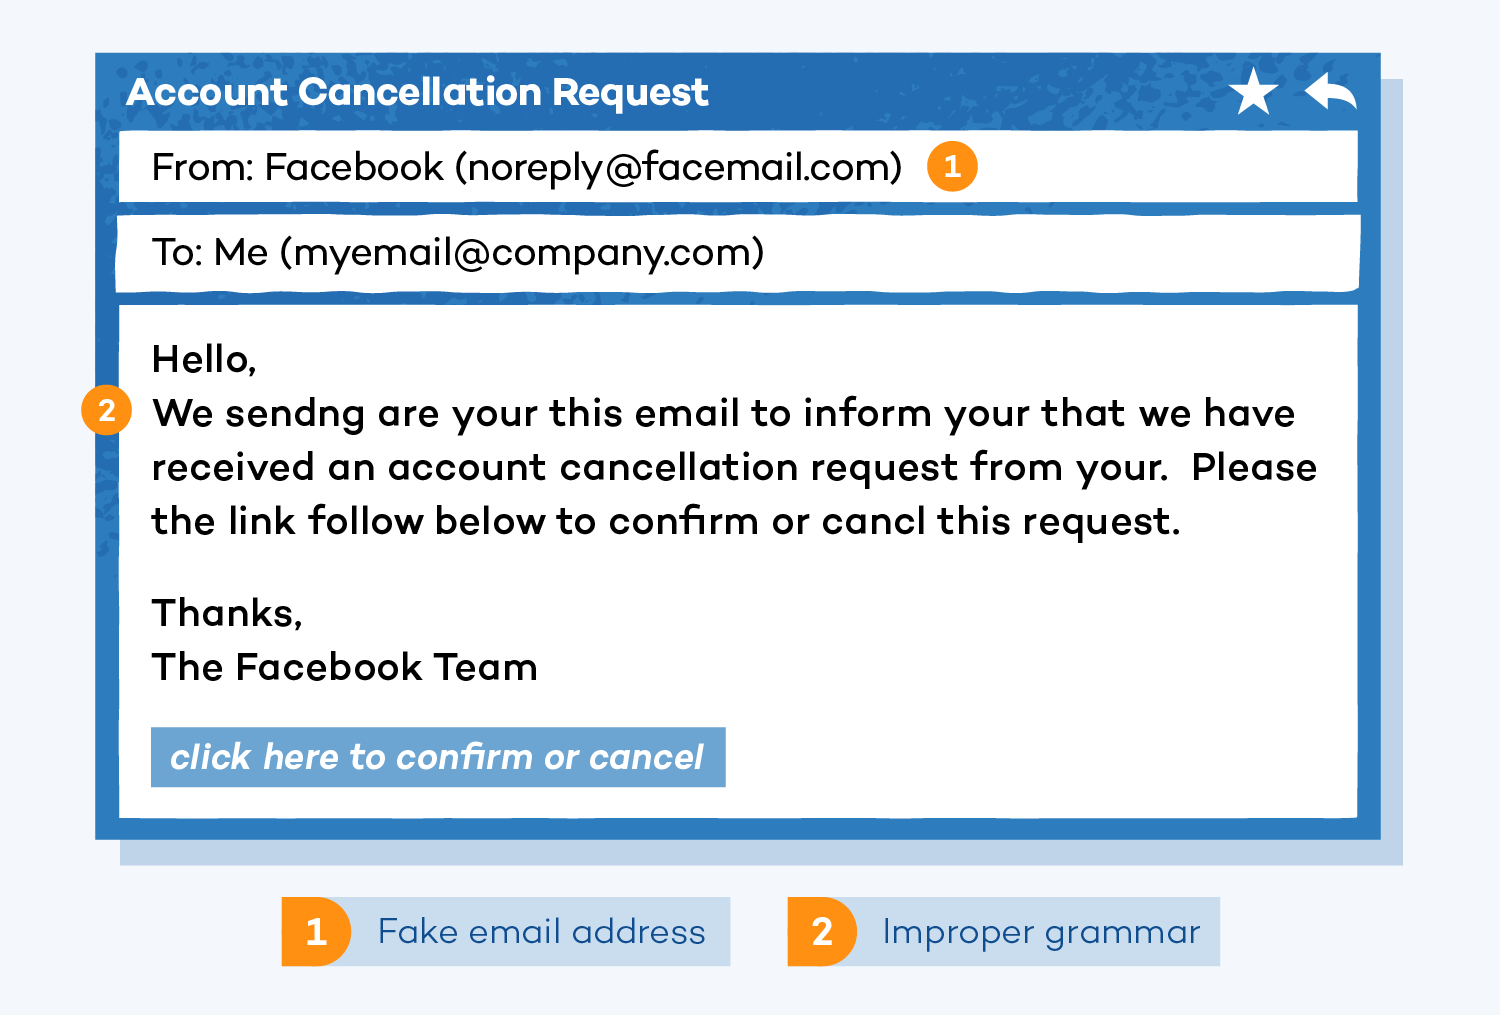 account cancelled social media scam